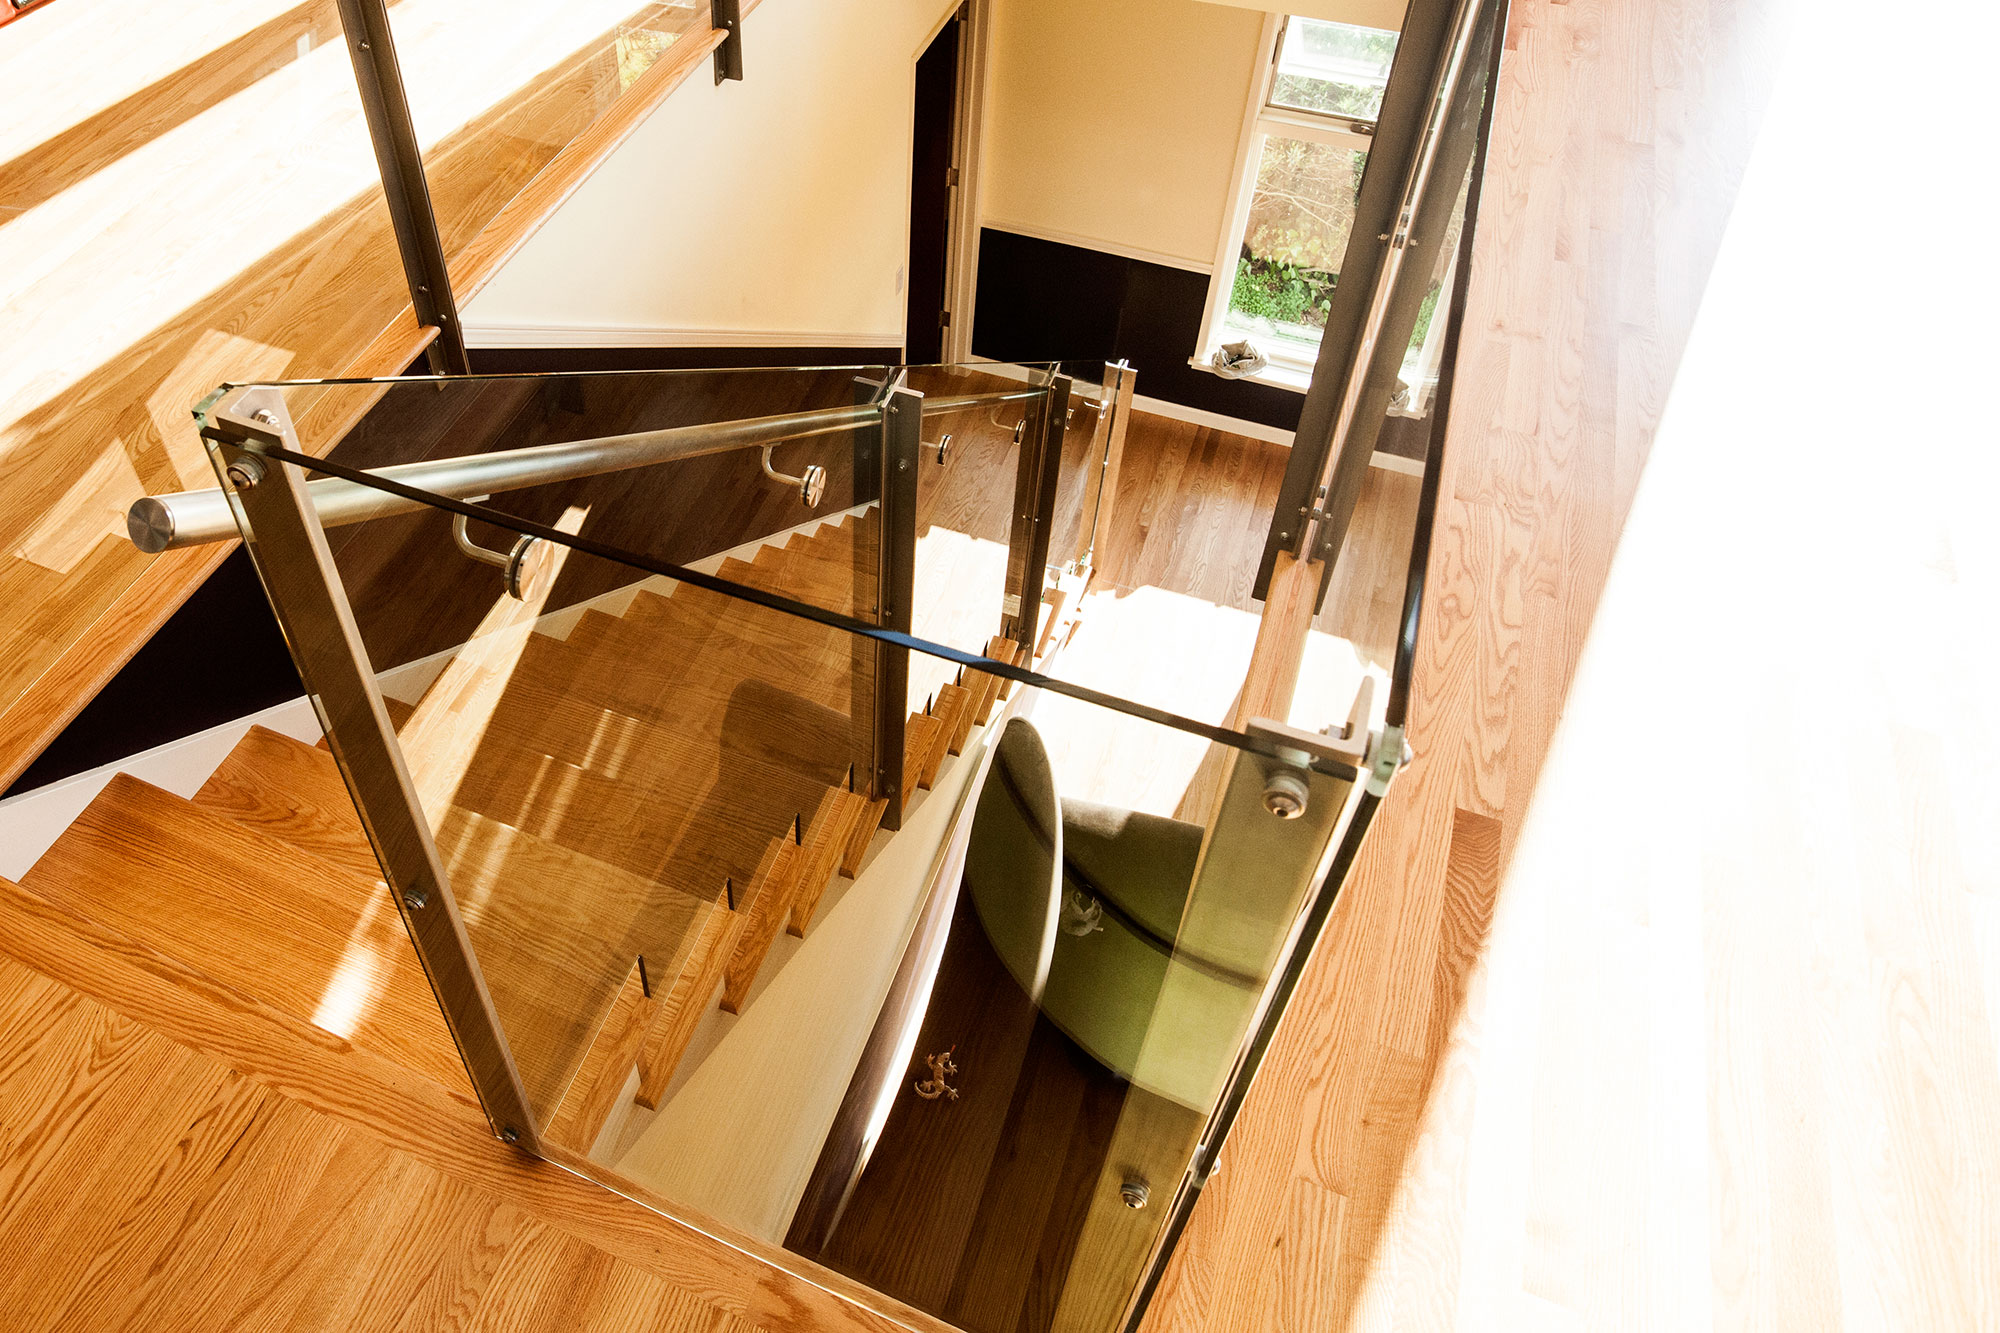 More glass railing to create unobtrusive railings that allow a clean visual and lots of light.